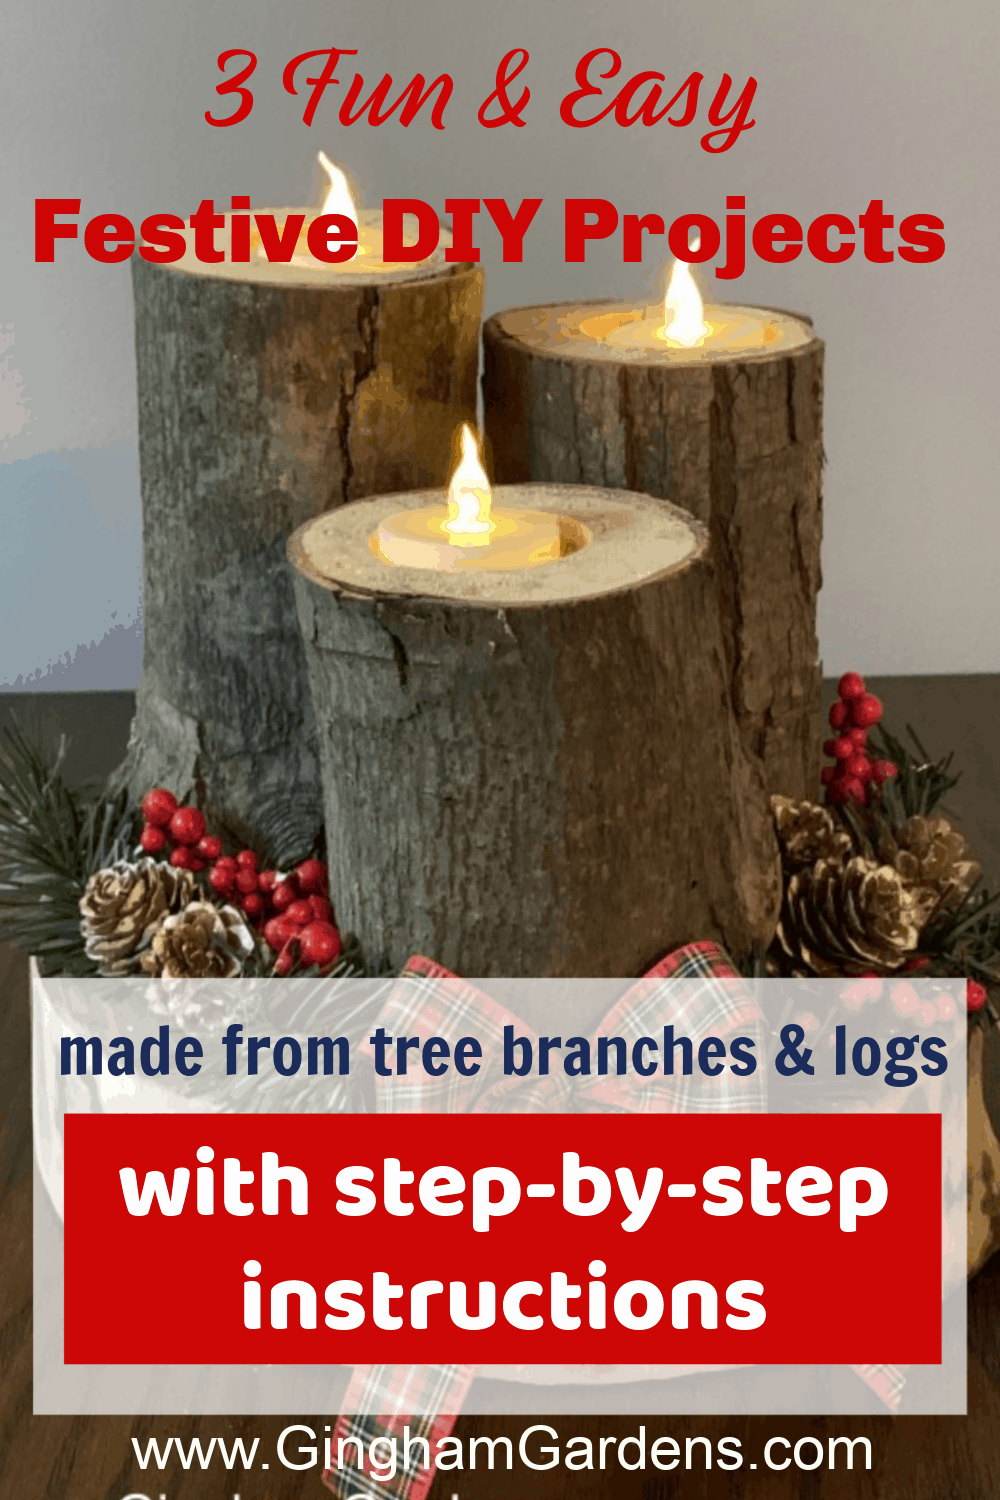 Image of wood candles with text overlay - Fun & Easy Festive DIY Projects